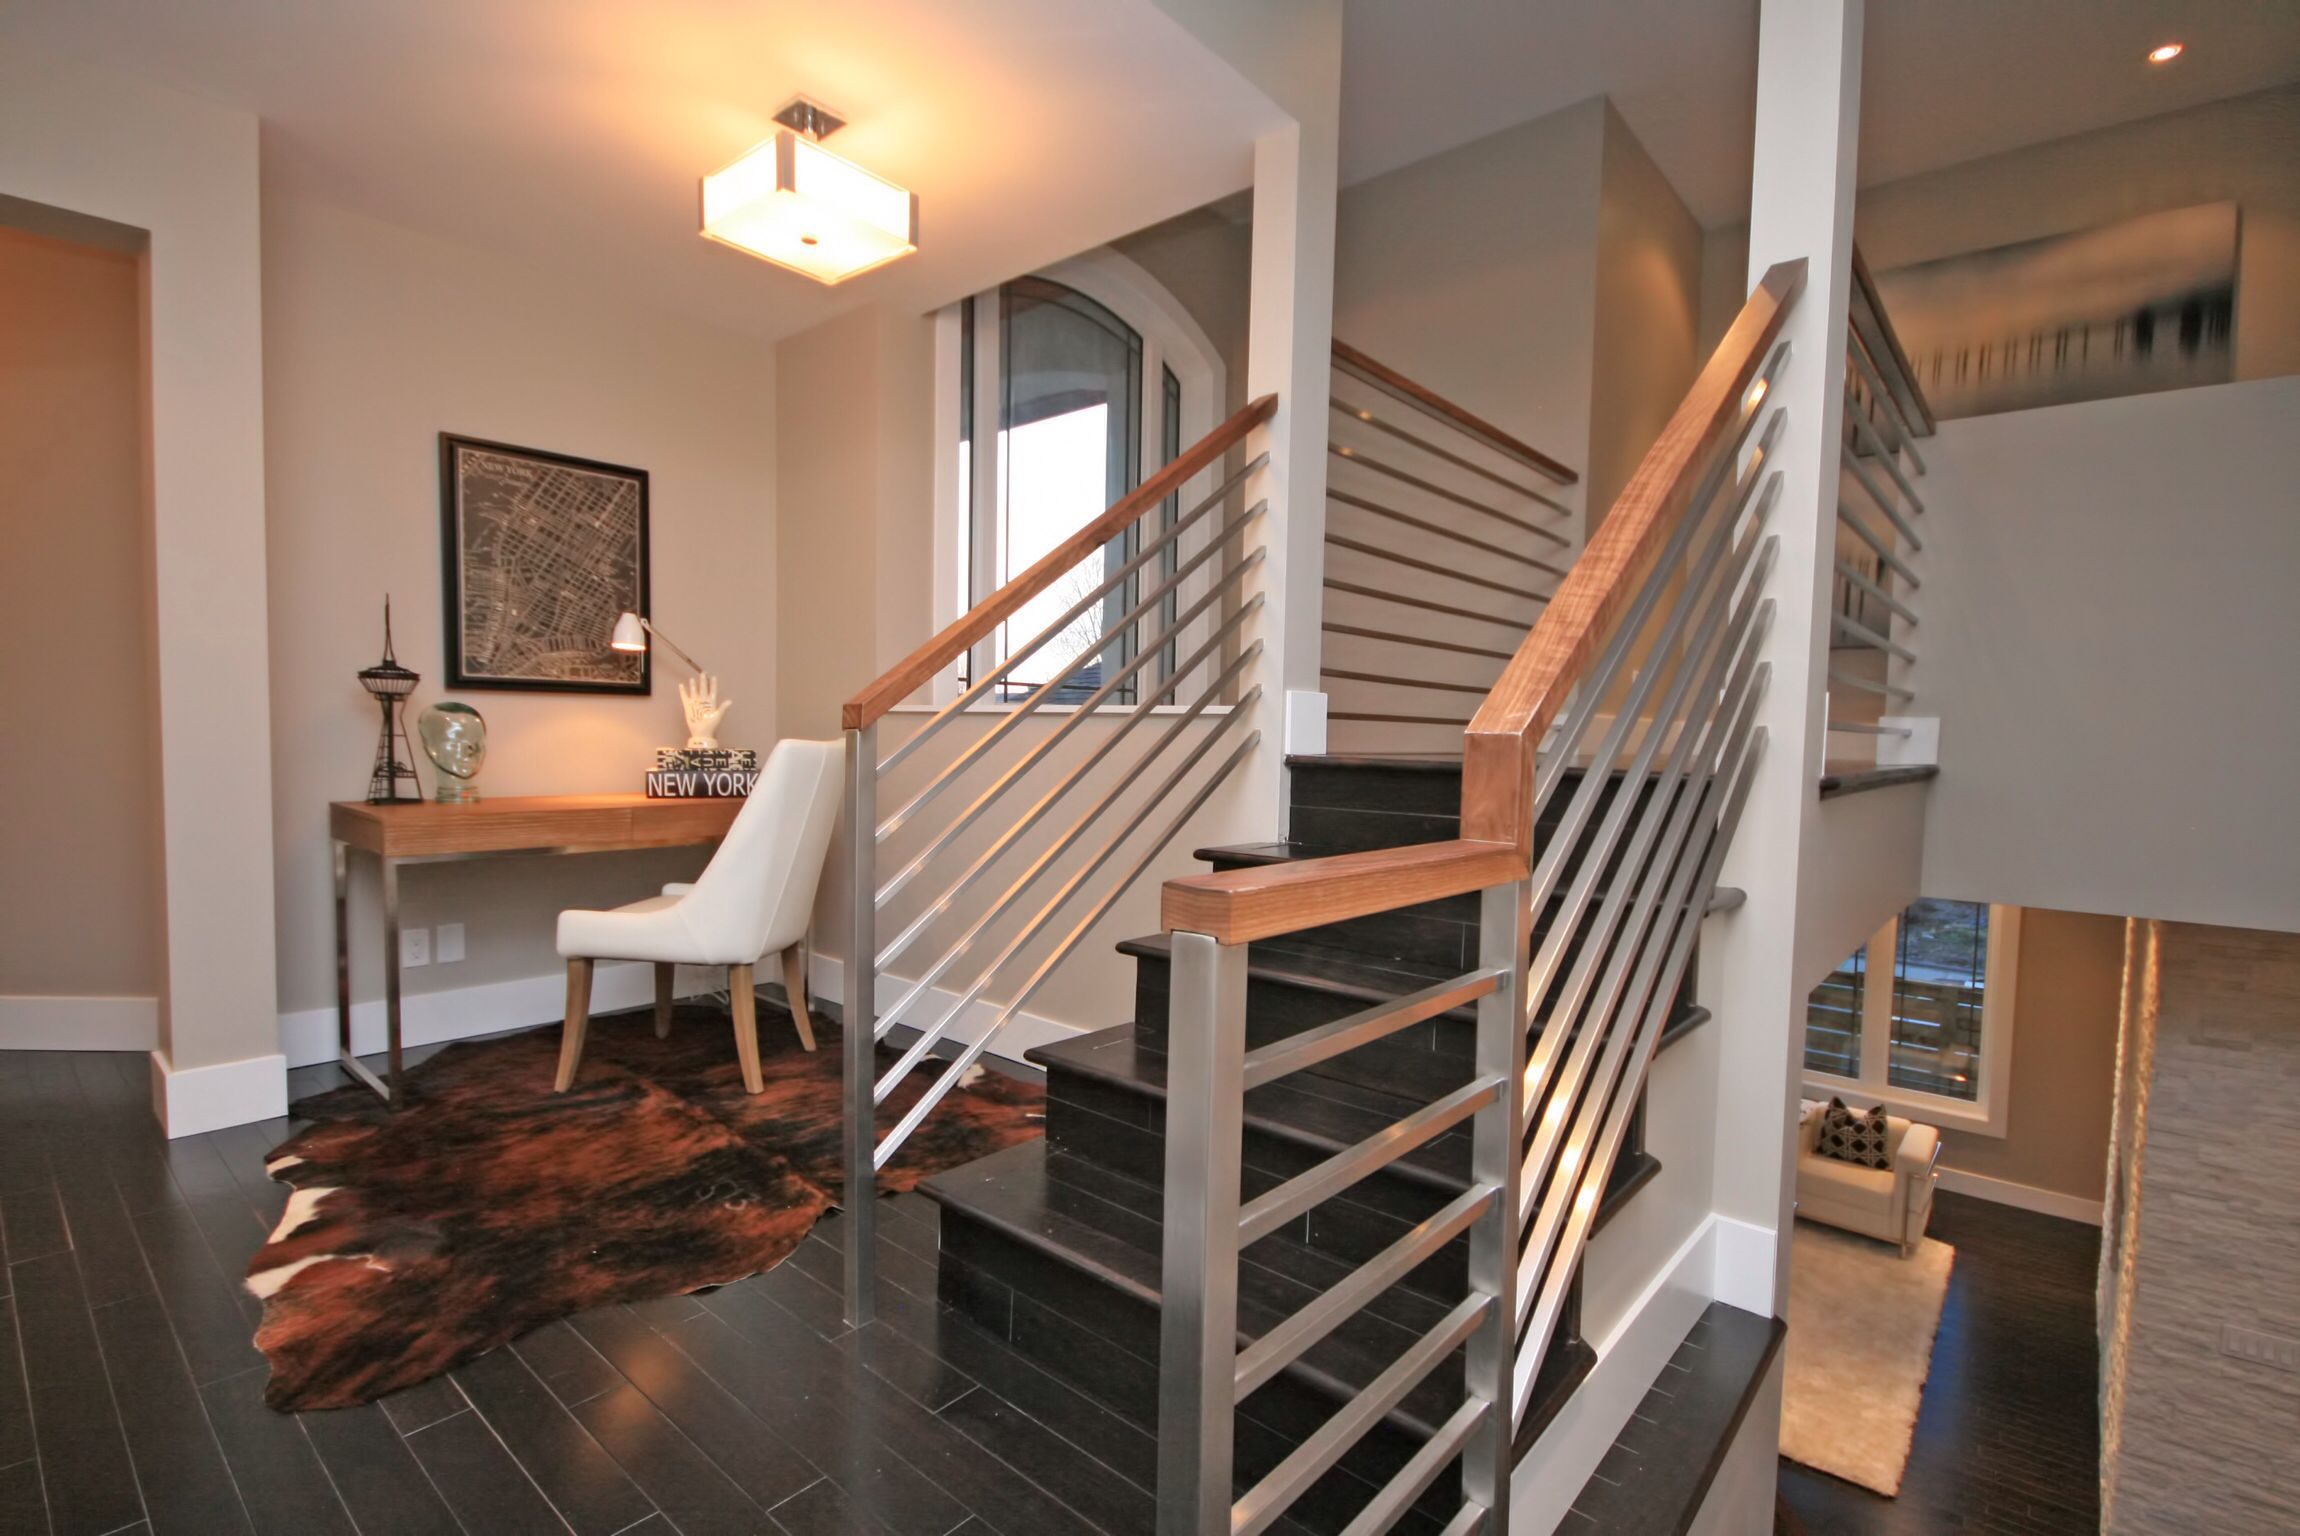 Staircase Finding a house, House, Home